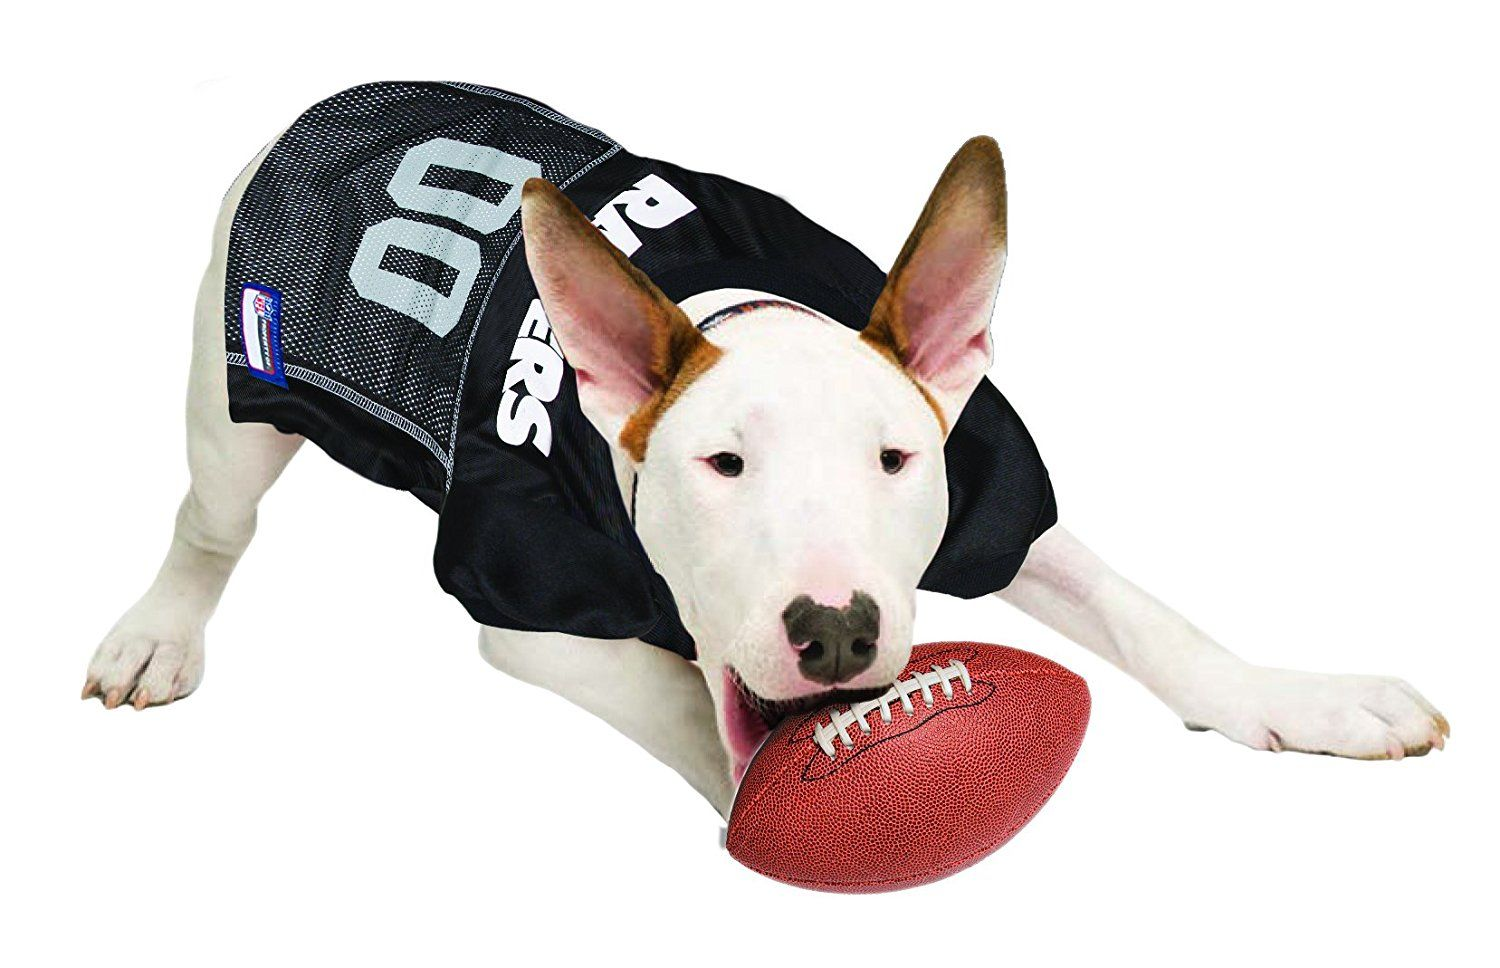 478dc86a236 Official NFL Oakland Raiders Football Jersey for your Dog. They come in all  sizes! So cute! www.dogfootballjersey.com